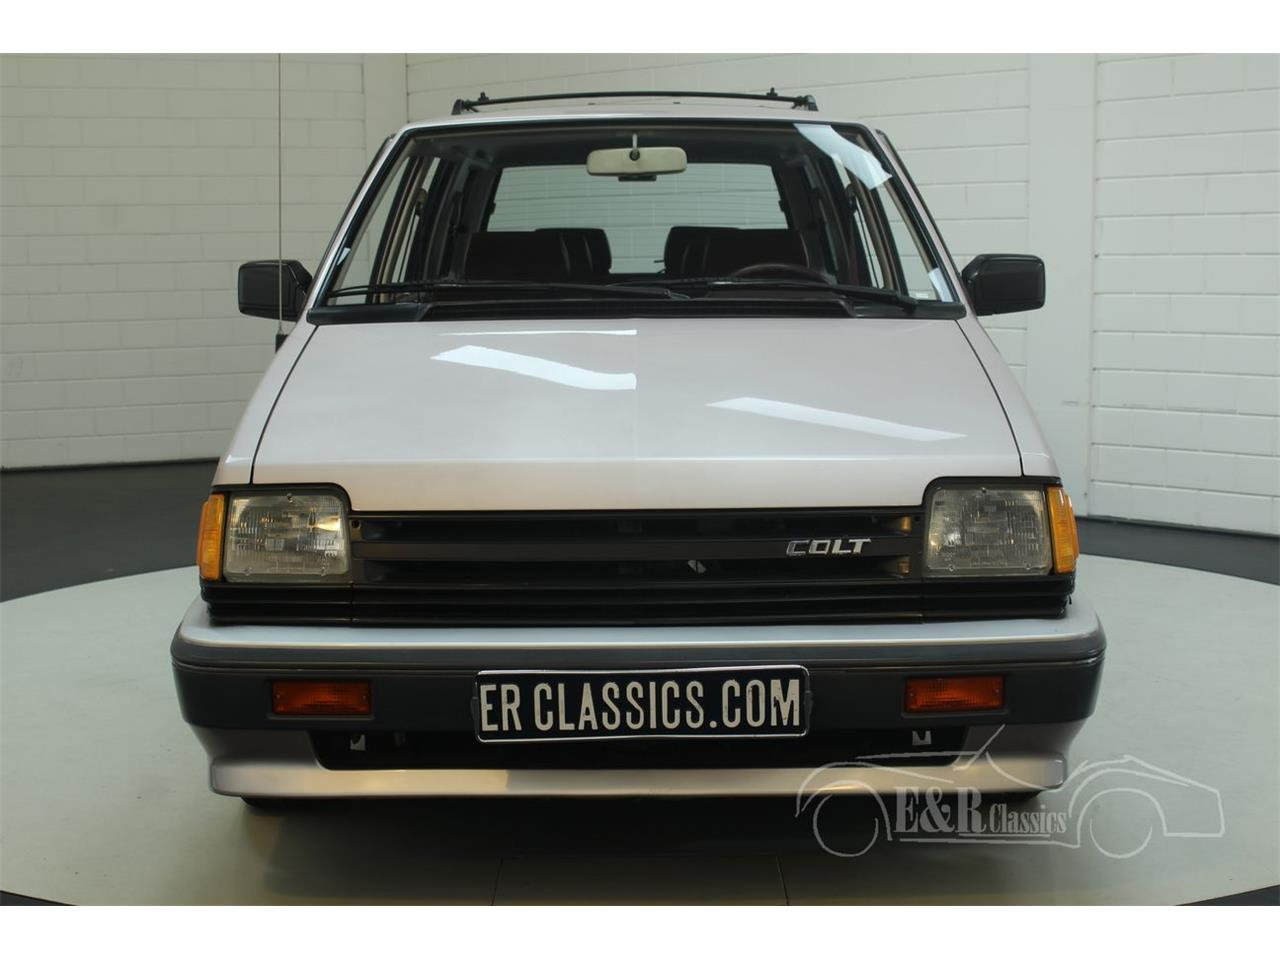 Large Picture of 1987 Colt located in Waalwijk [nl] Pays-Bas Offered by E & R Classics - PVV4